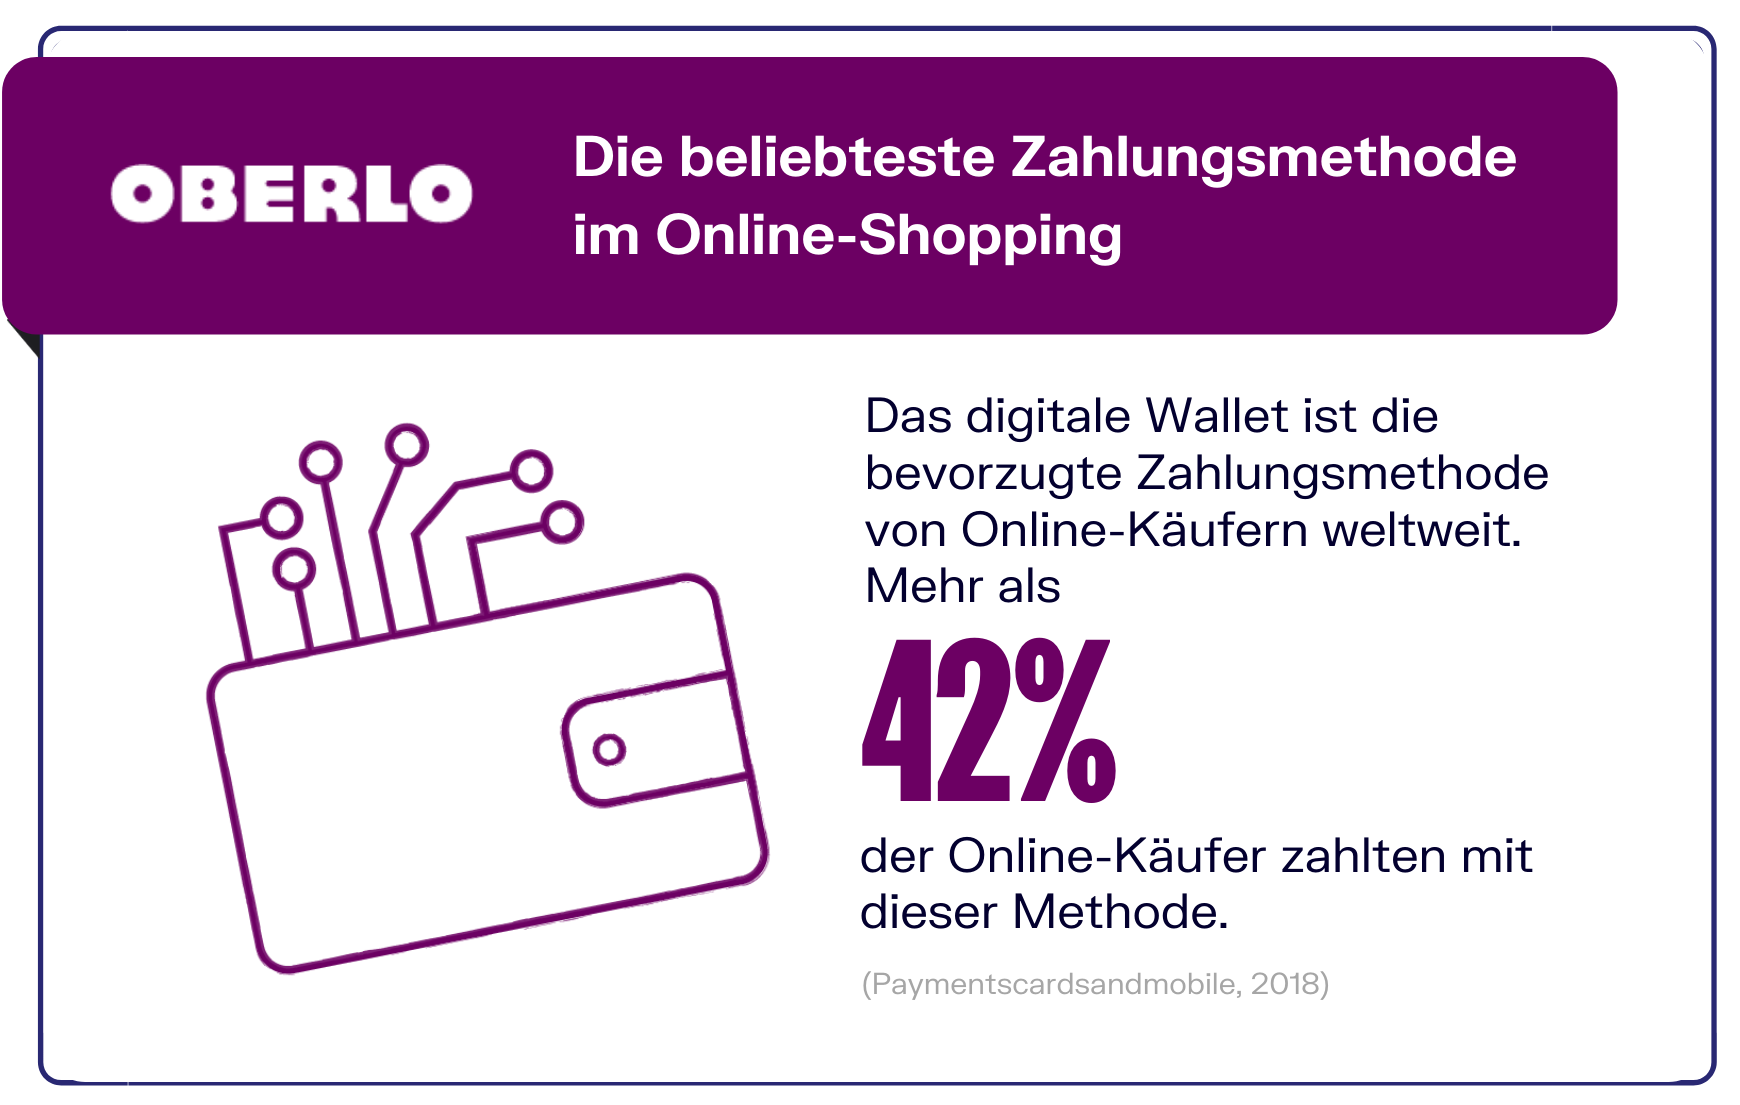 Digitale Wallets als Zahlungsmethode im E-Commerce